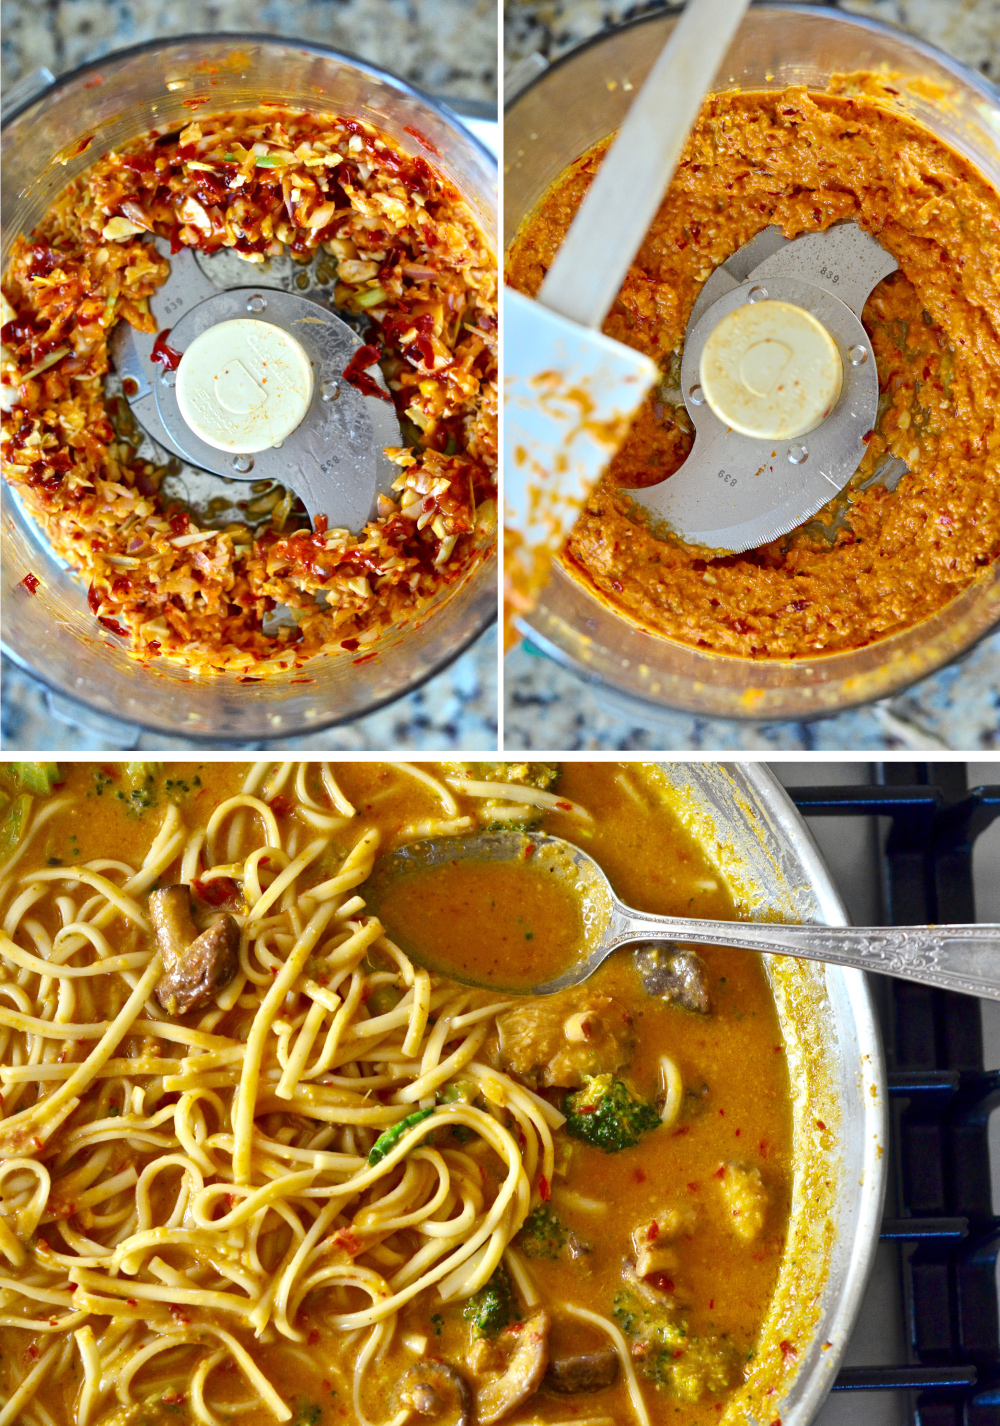 Homemade Vegetable Laksa Soup with Noodles. Recipe via @PureMamas | gluten-free vegan